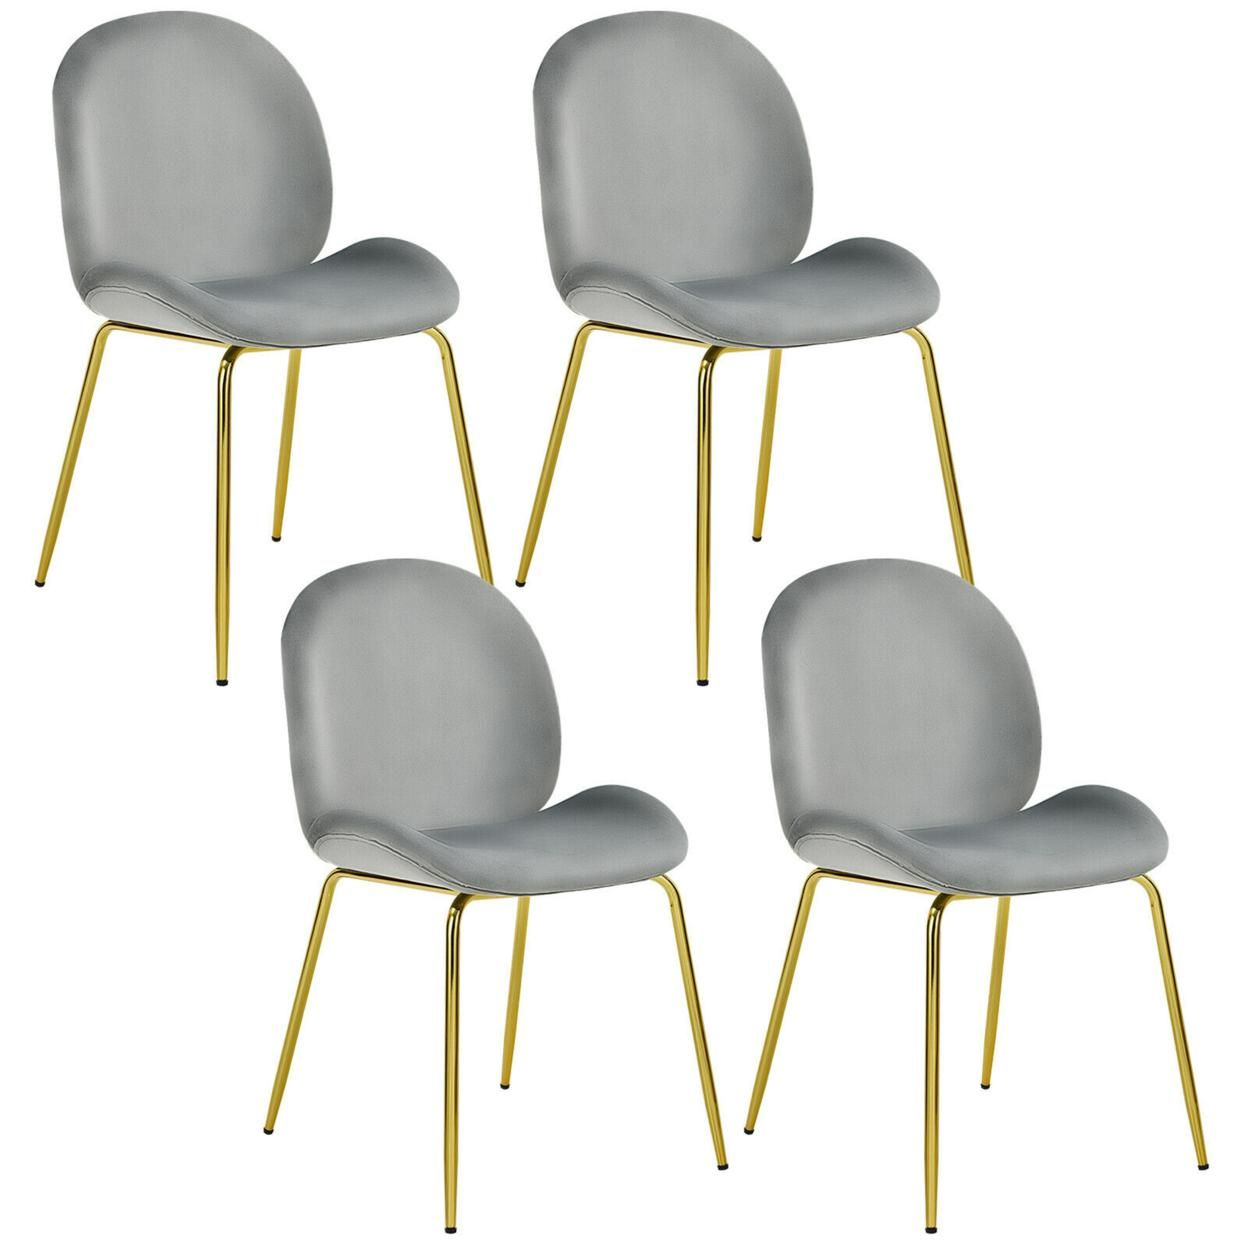 Gymax 4PCS Velvet Dining Chair Accent Leisure Chair Armless Side Chair